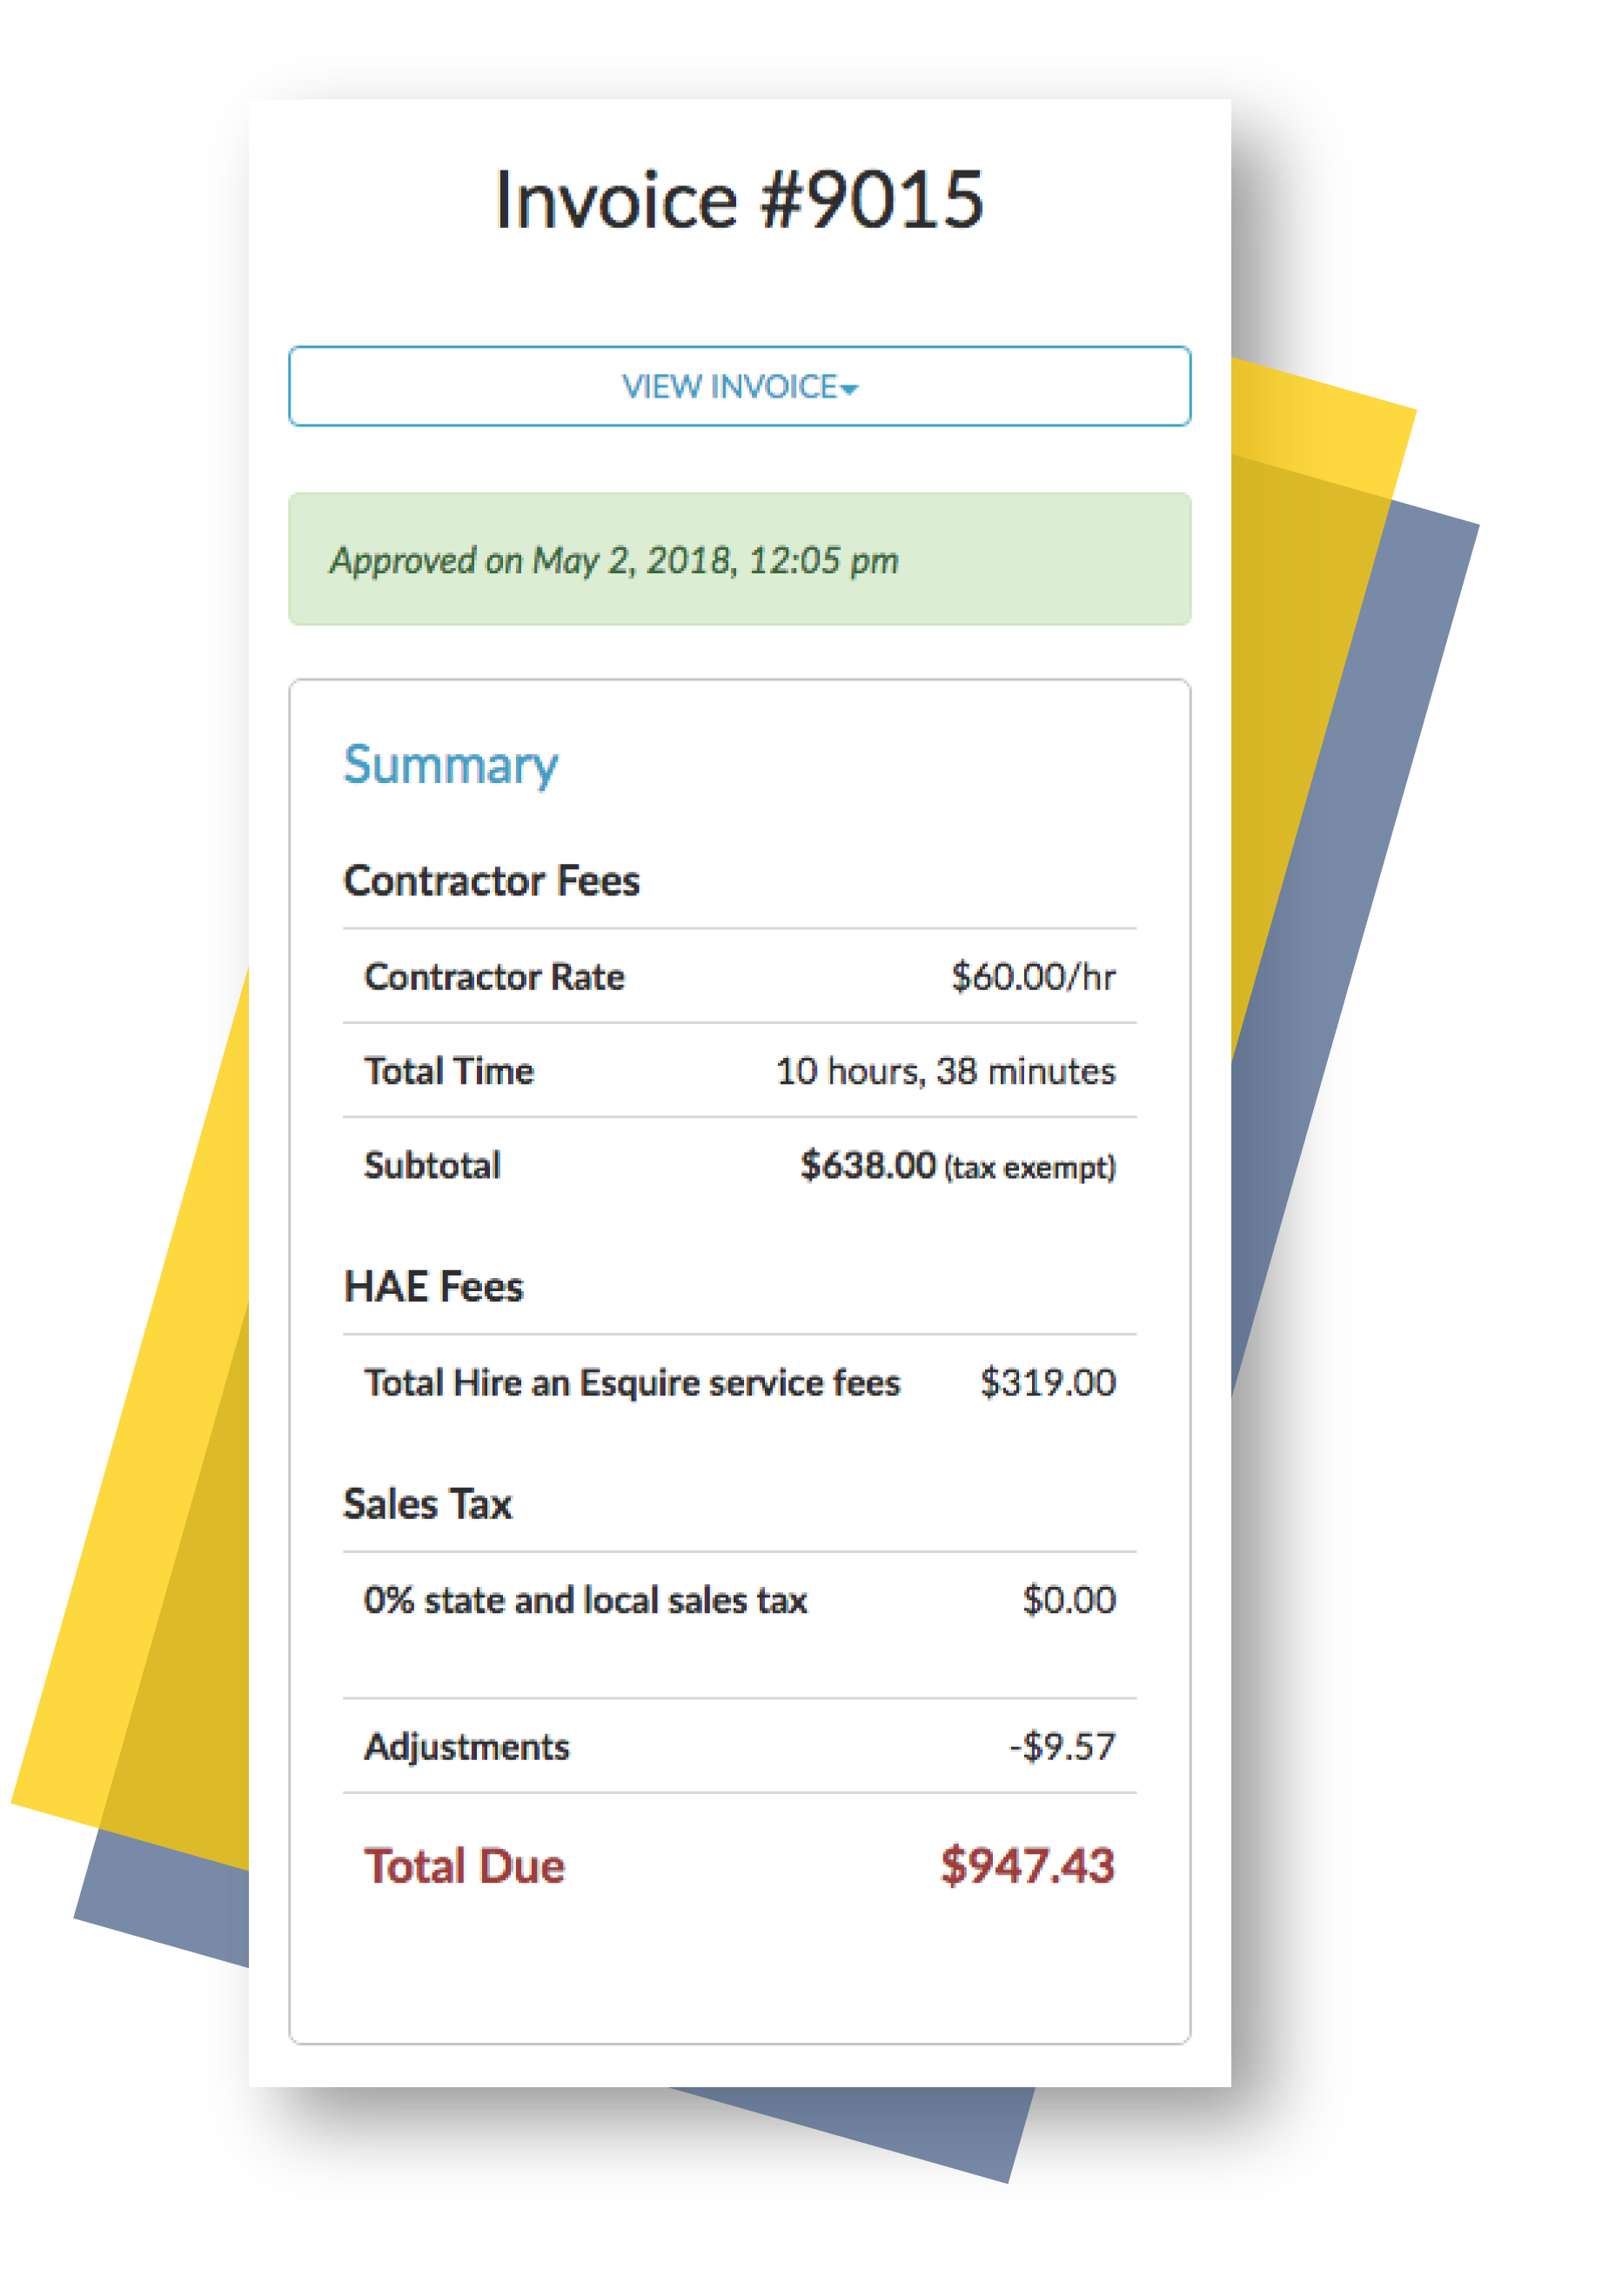 Invoice9015.png